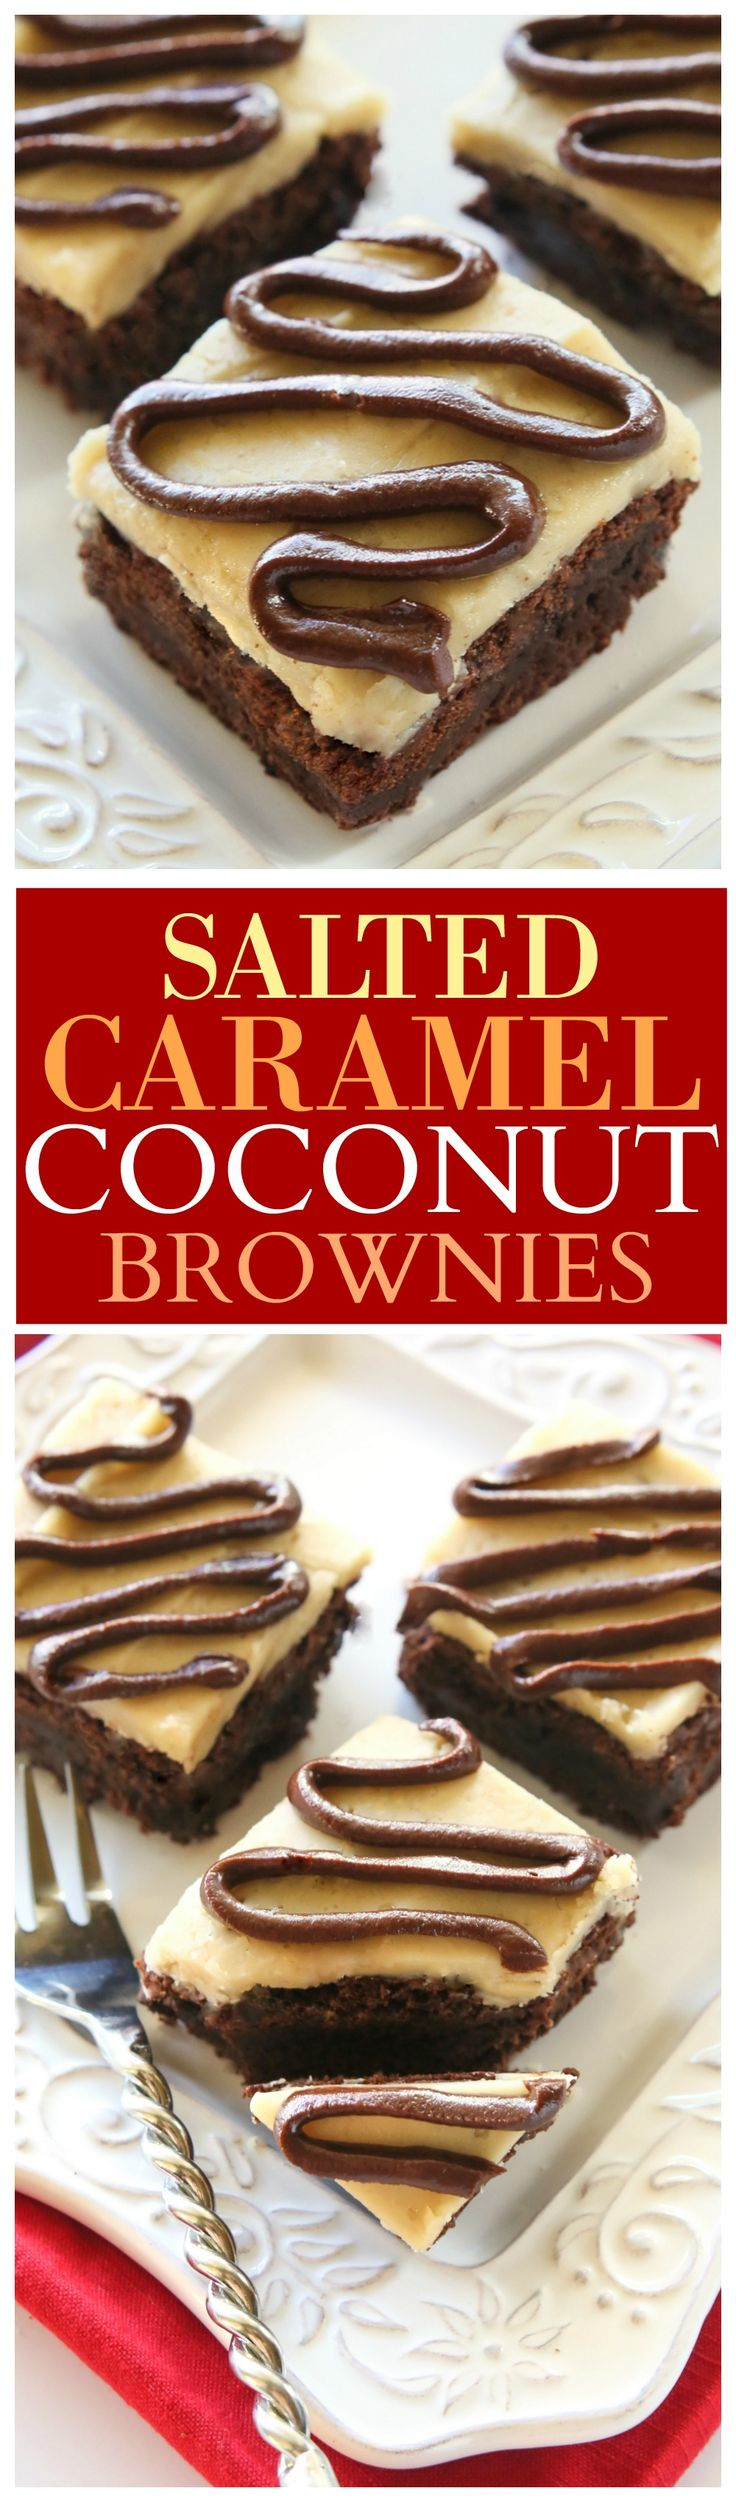 Salted Caramel Coconut Brownies - Moist, chewy coconut brownies with a salted caramel glaze and chocolate drizzle. the-girl-who-ate-everything.com